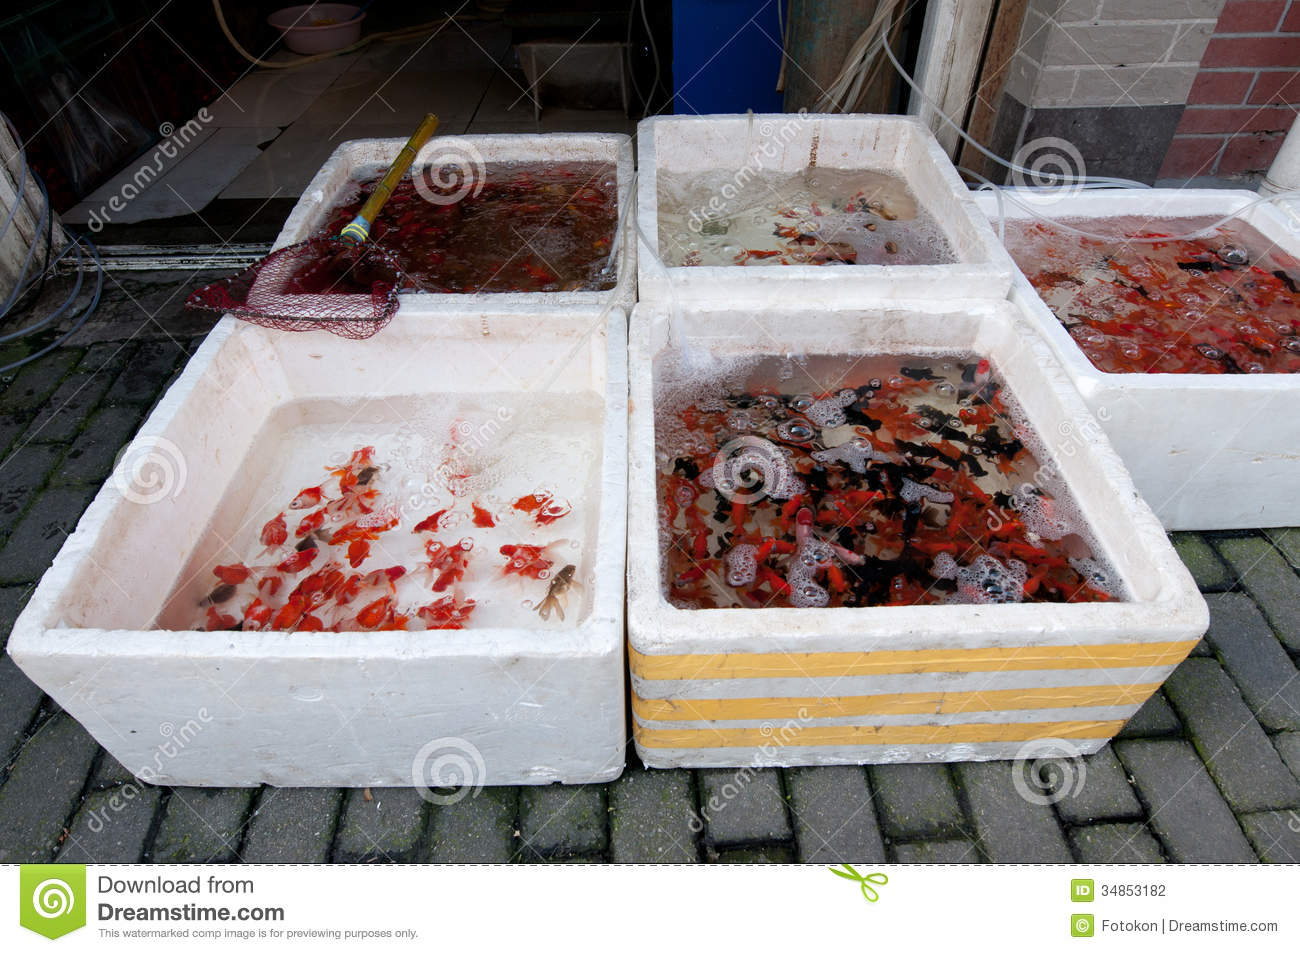 Pet shop stock photography image 34853182 for Fish and pet store